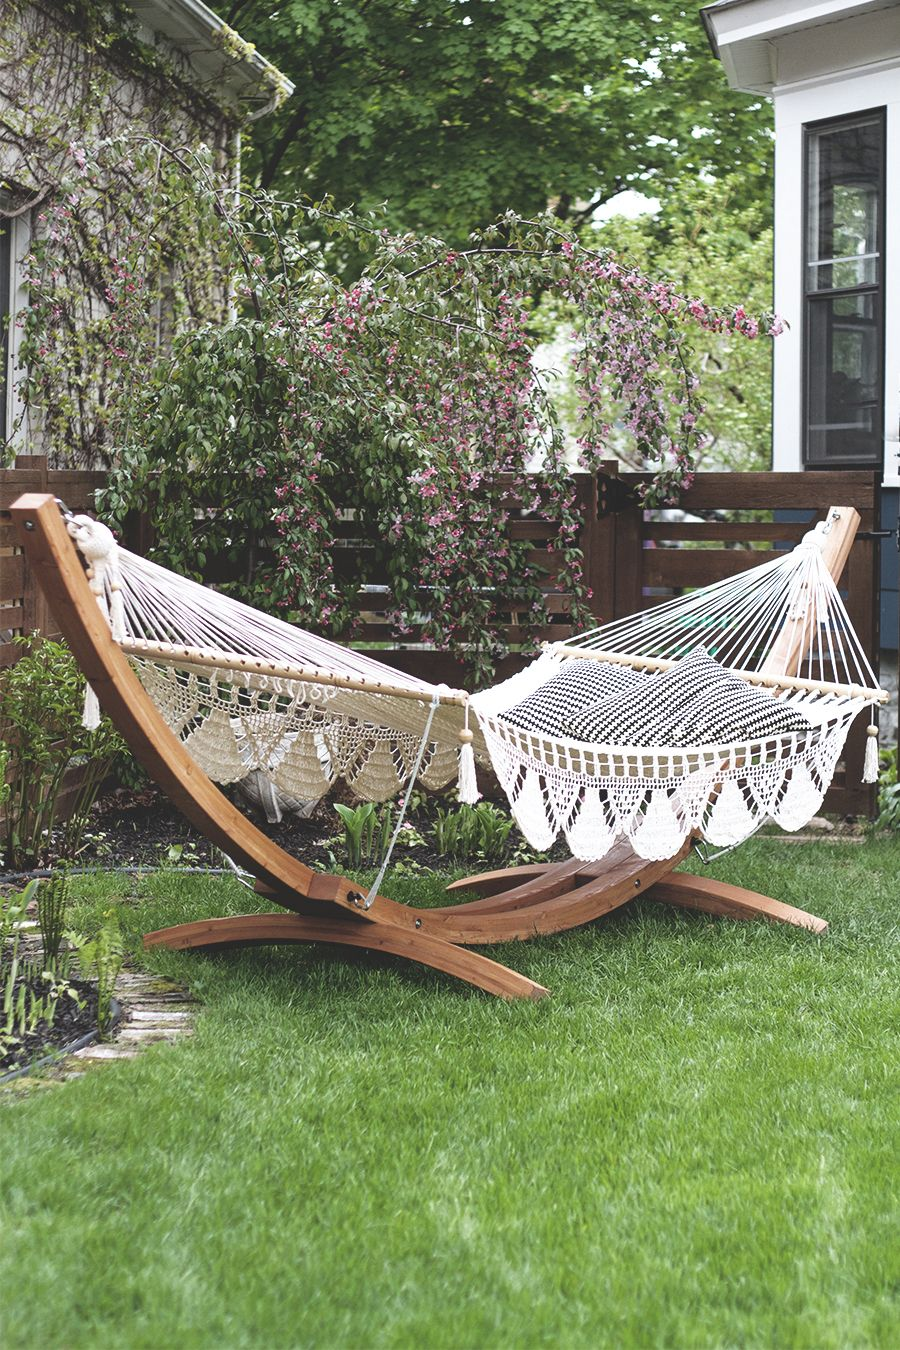 Backyard hammock backyard pinterest backyard backyard hammock